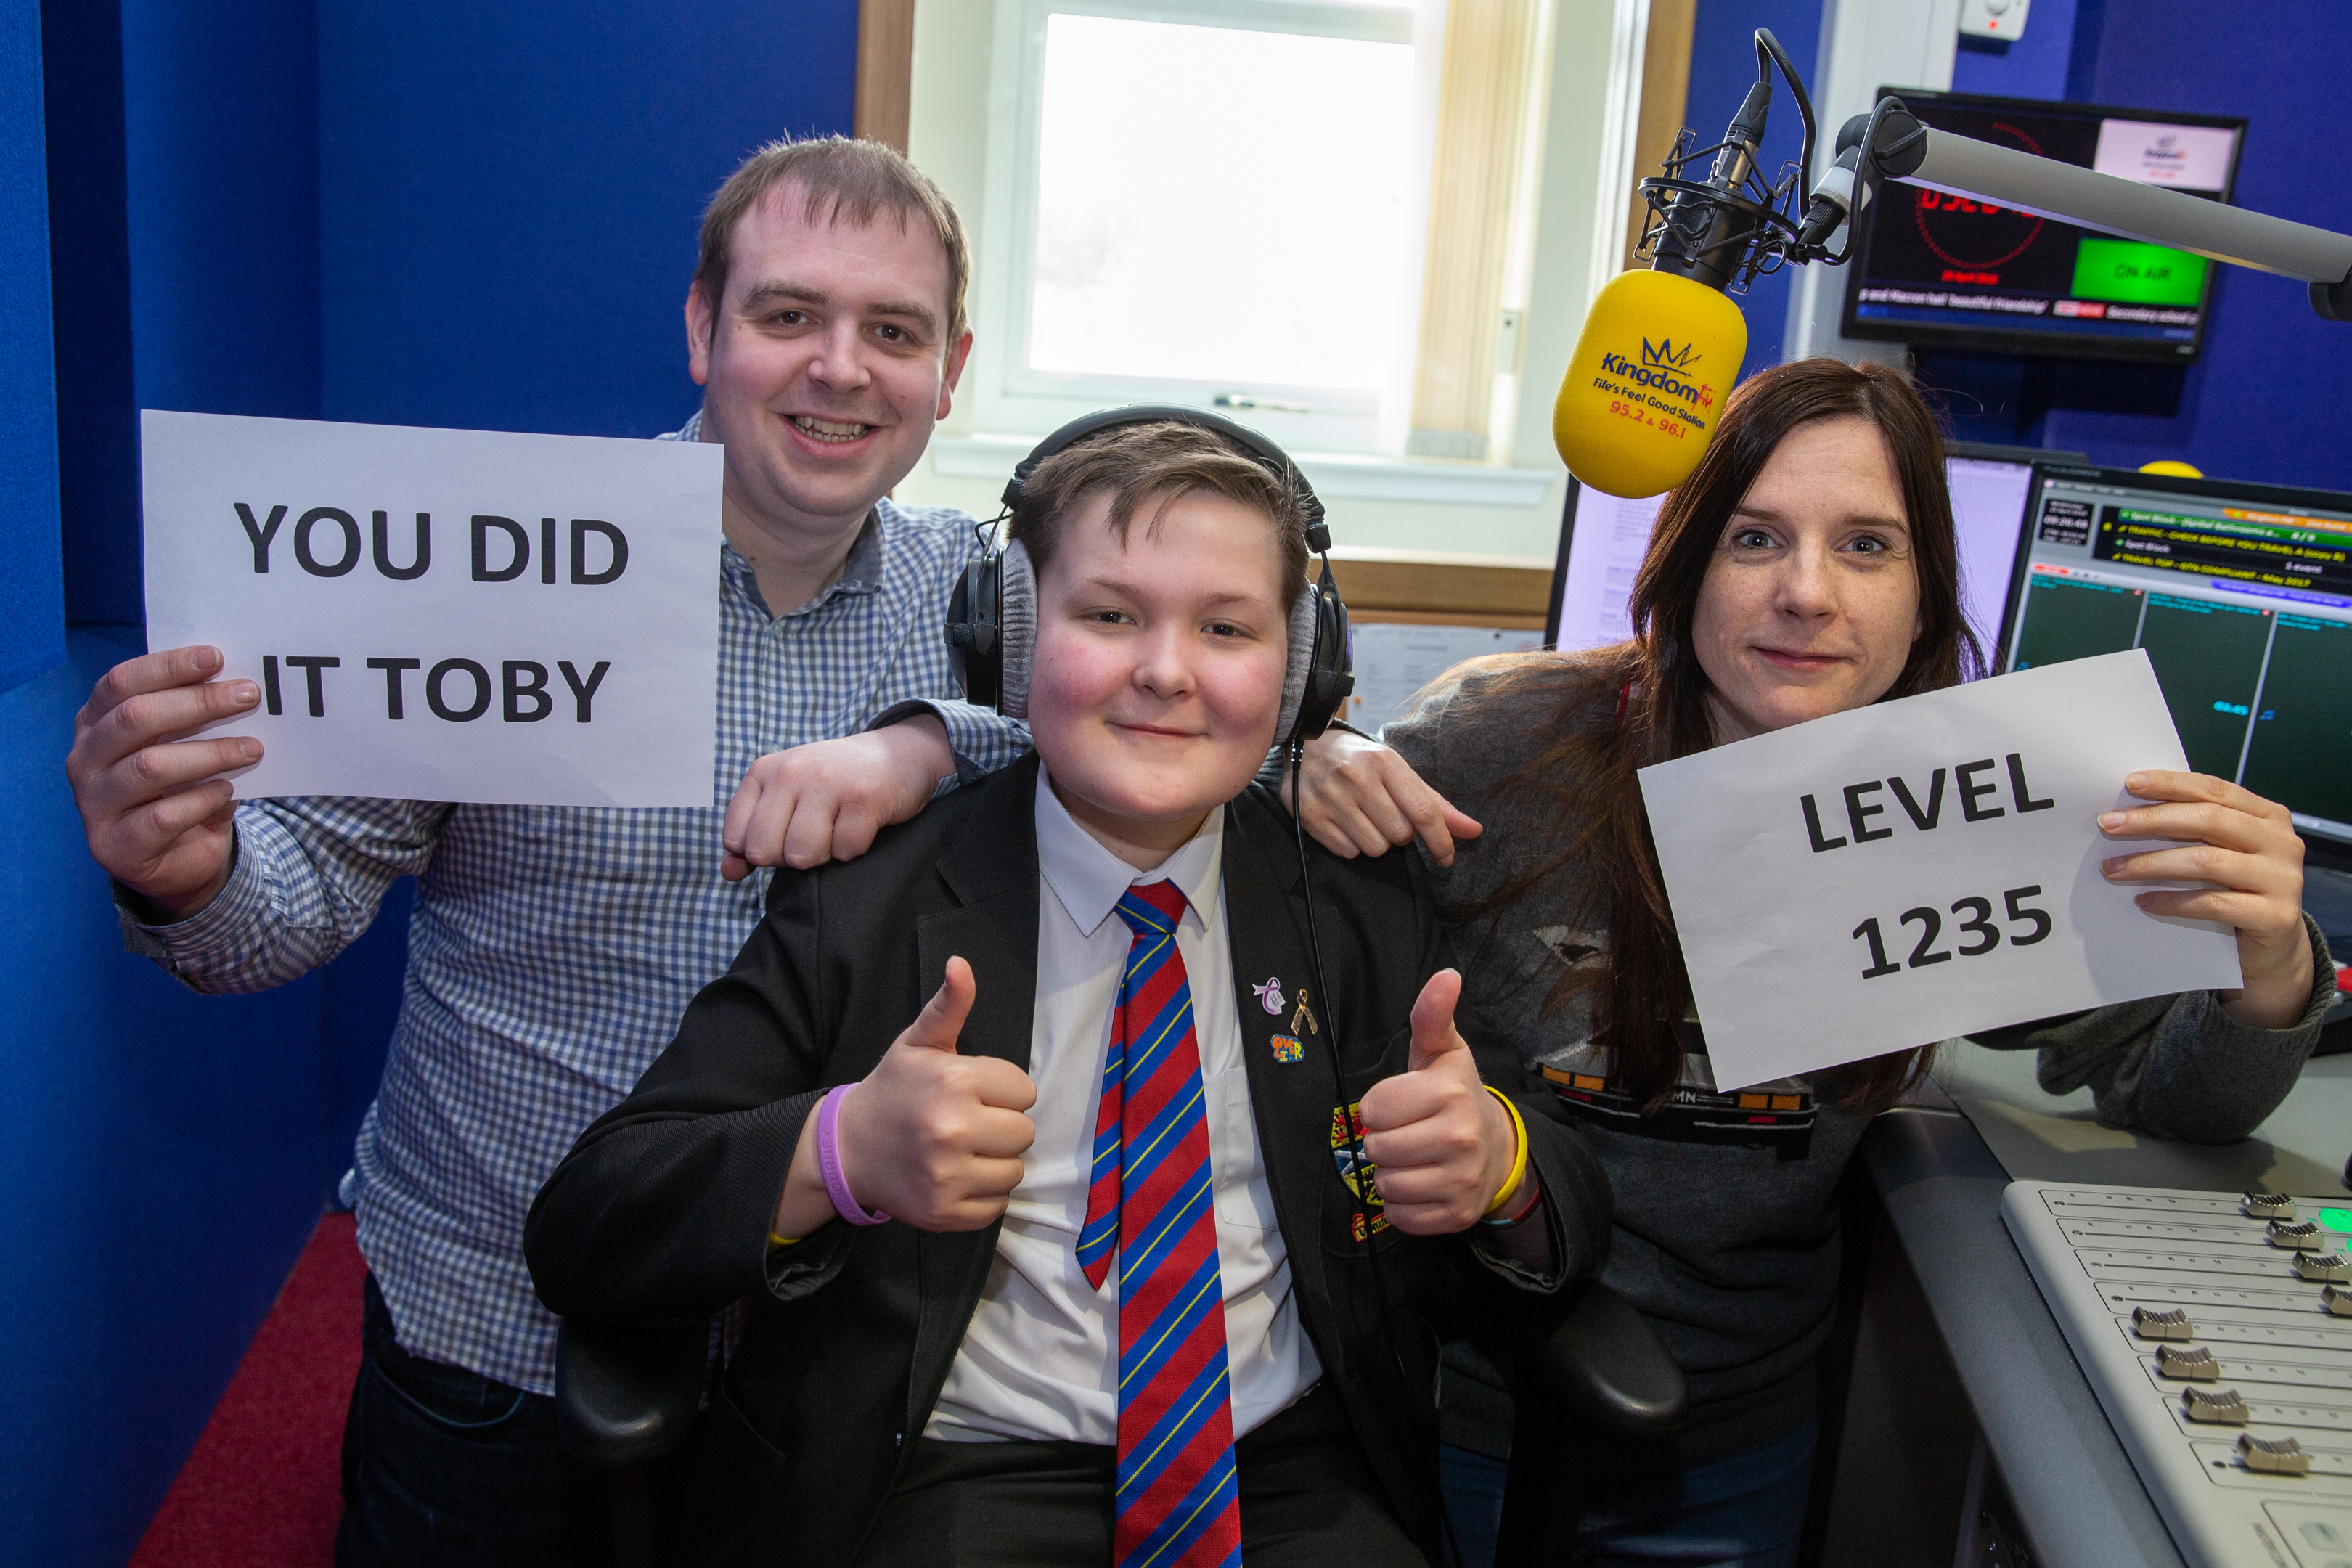 Toby Etheridge celebrates being in remission from his cancer with a visit to his friends at Kingdom FM today, including breakfast presenters Dave Connor and Vanessa Motion.